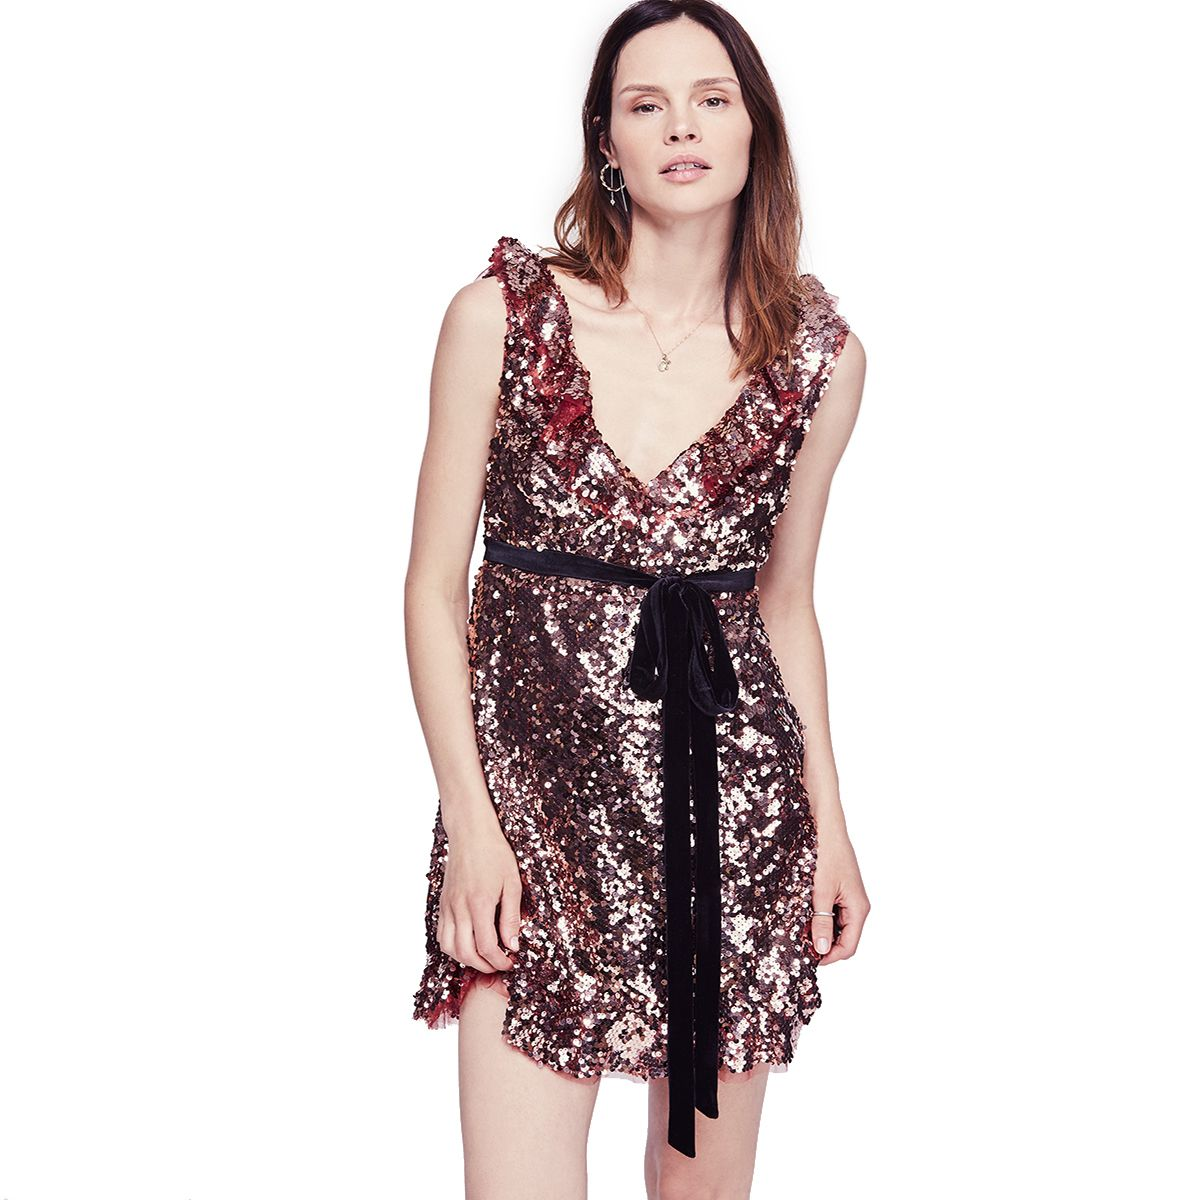 f3f1a23627e Free People Dresses for Women - Macy's